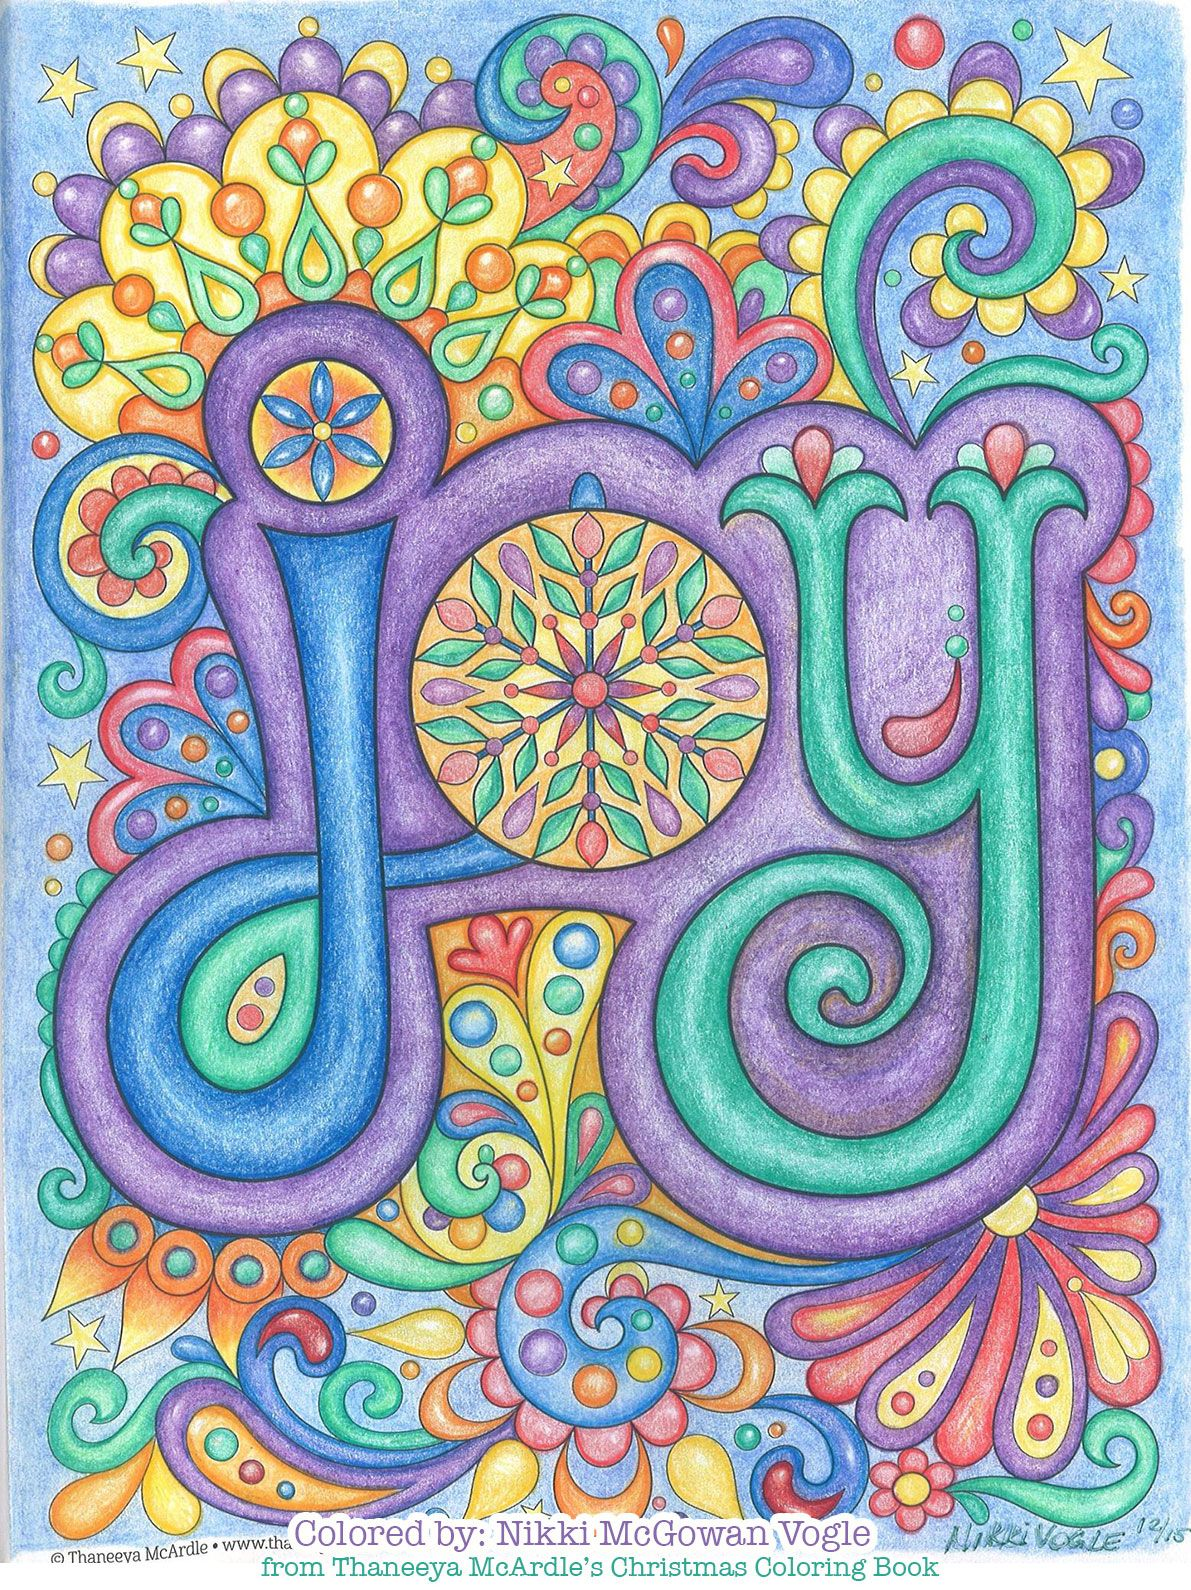 Joy coloring page from Thaneeya McArdle's Christmas